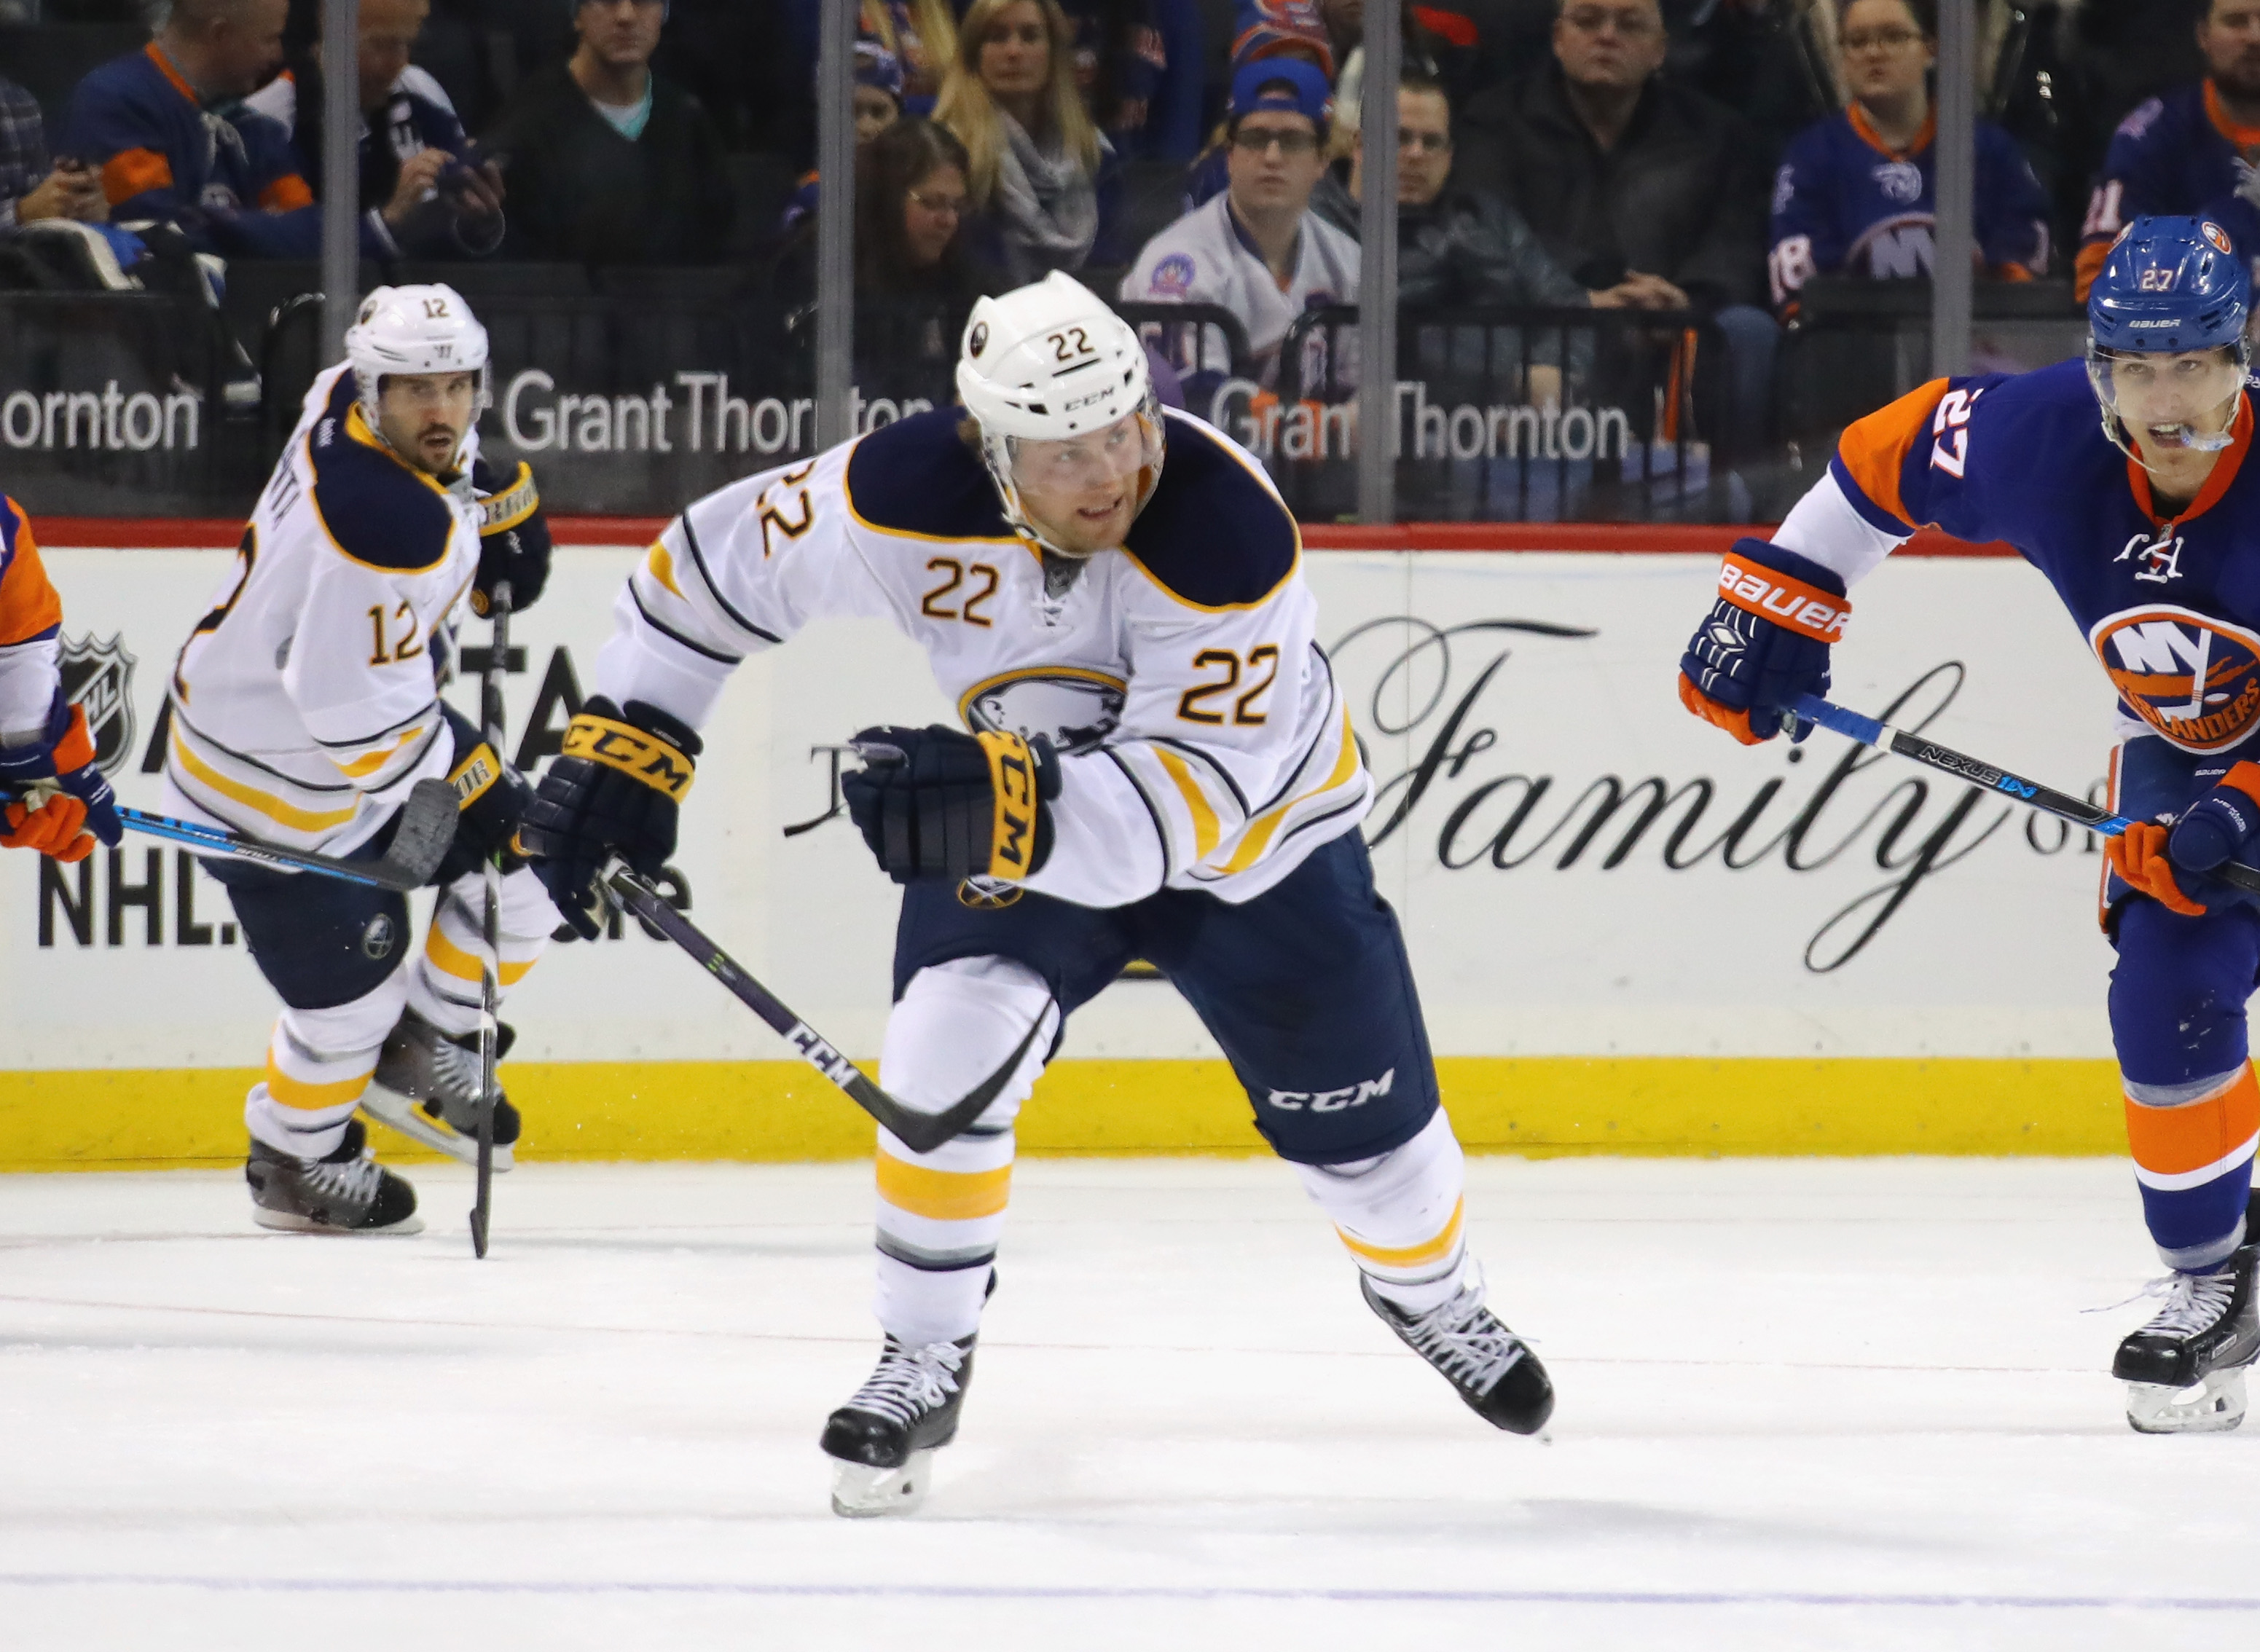 Johan Larsson suffered dislocations of his wrist and elbow. (Getty Images)